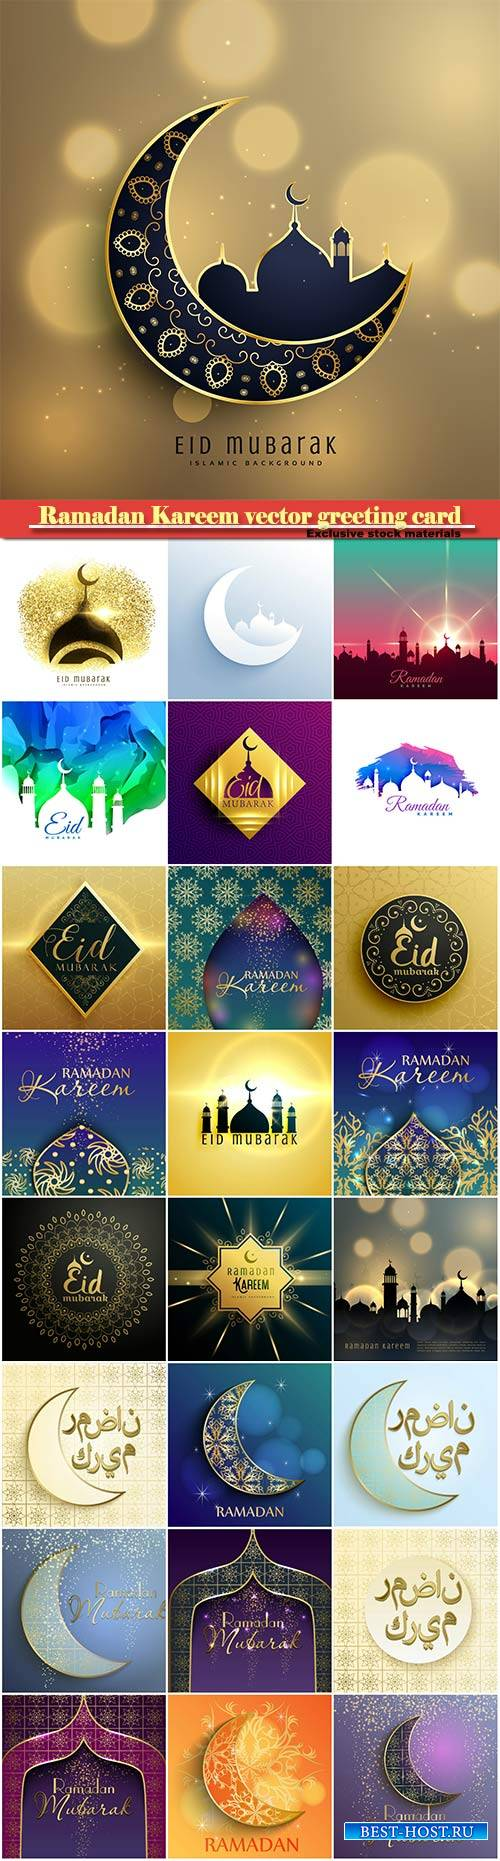 Ramadan Kareem vector greeting card, islamic background